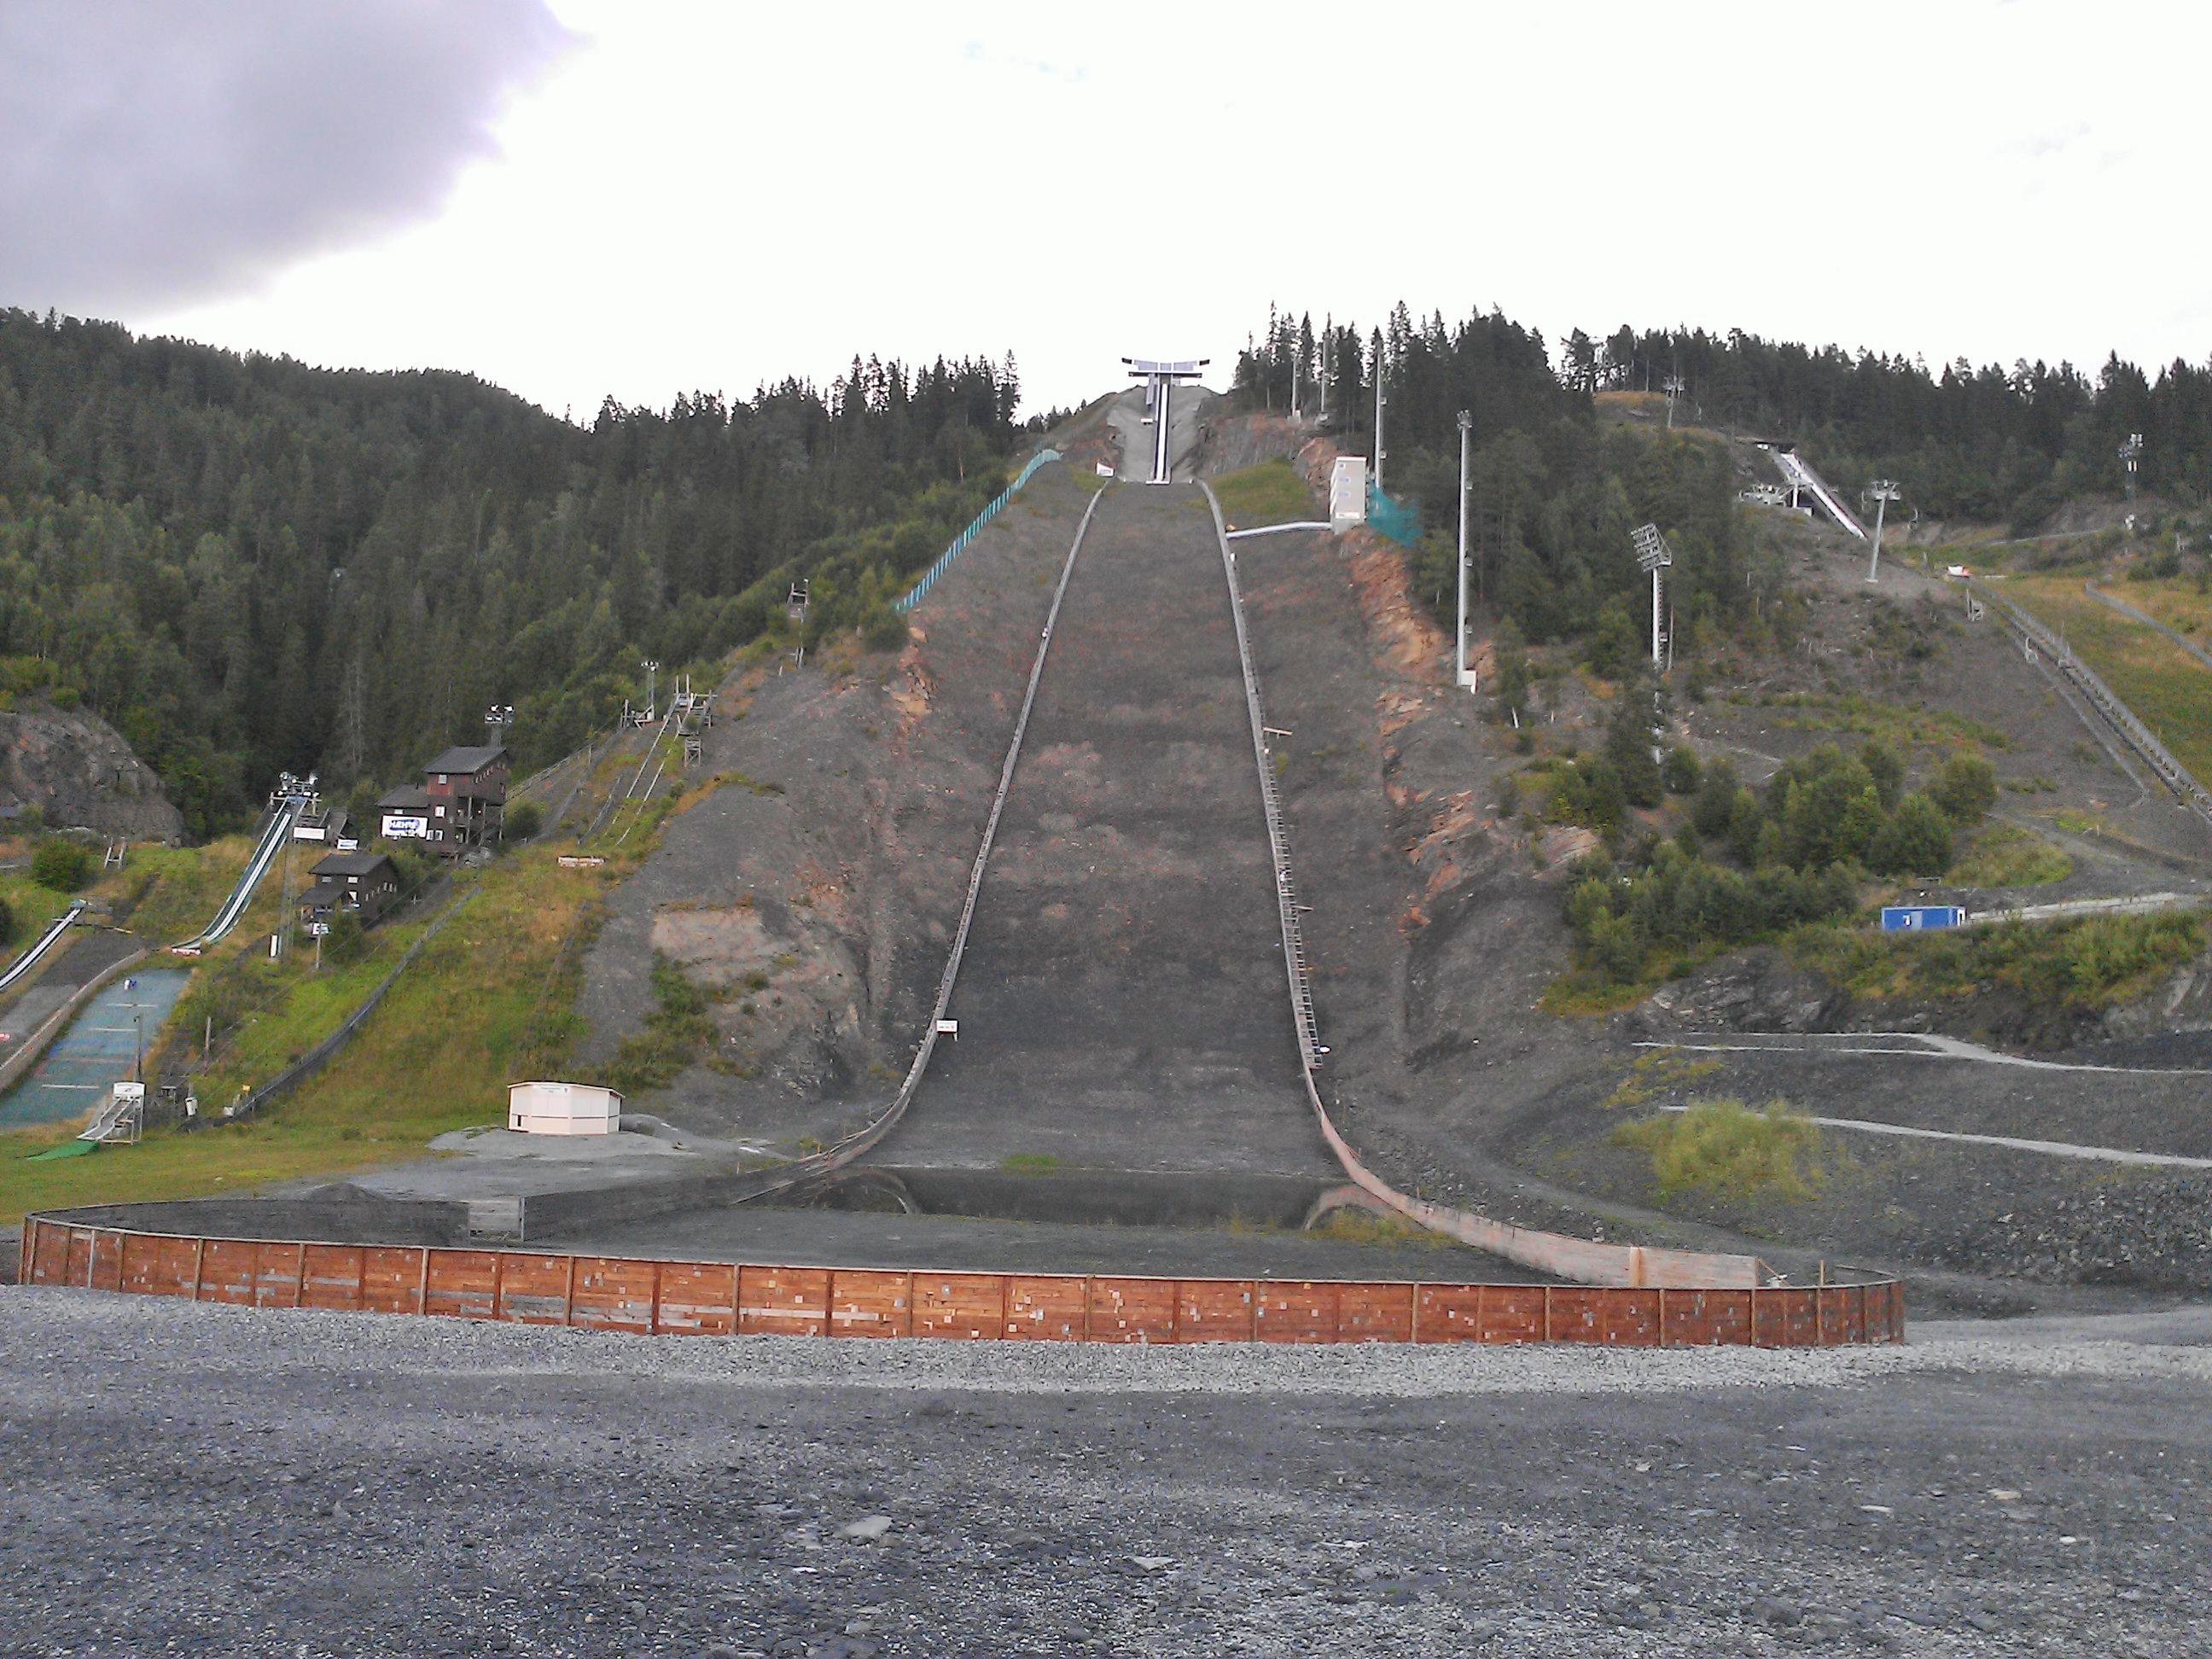 Vikersund Ski Jump Hill - Biggest Hill In The World